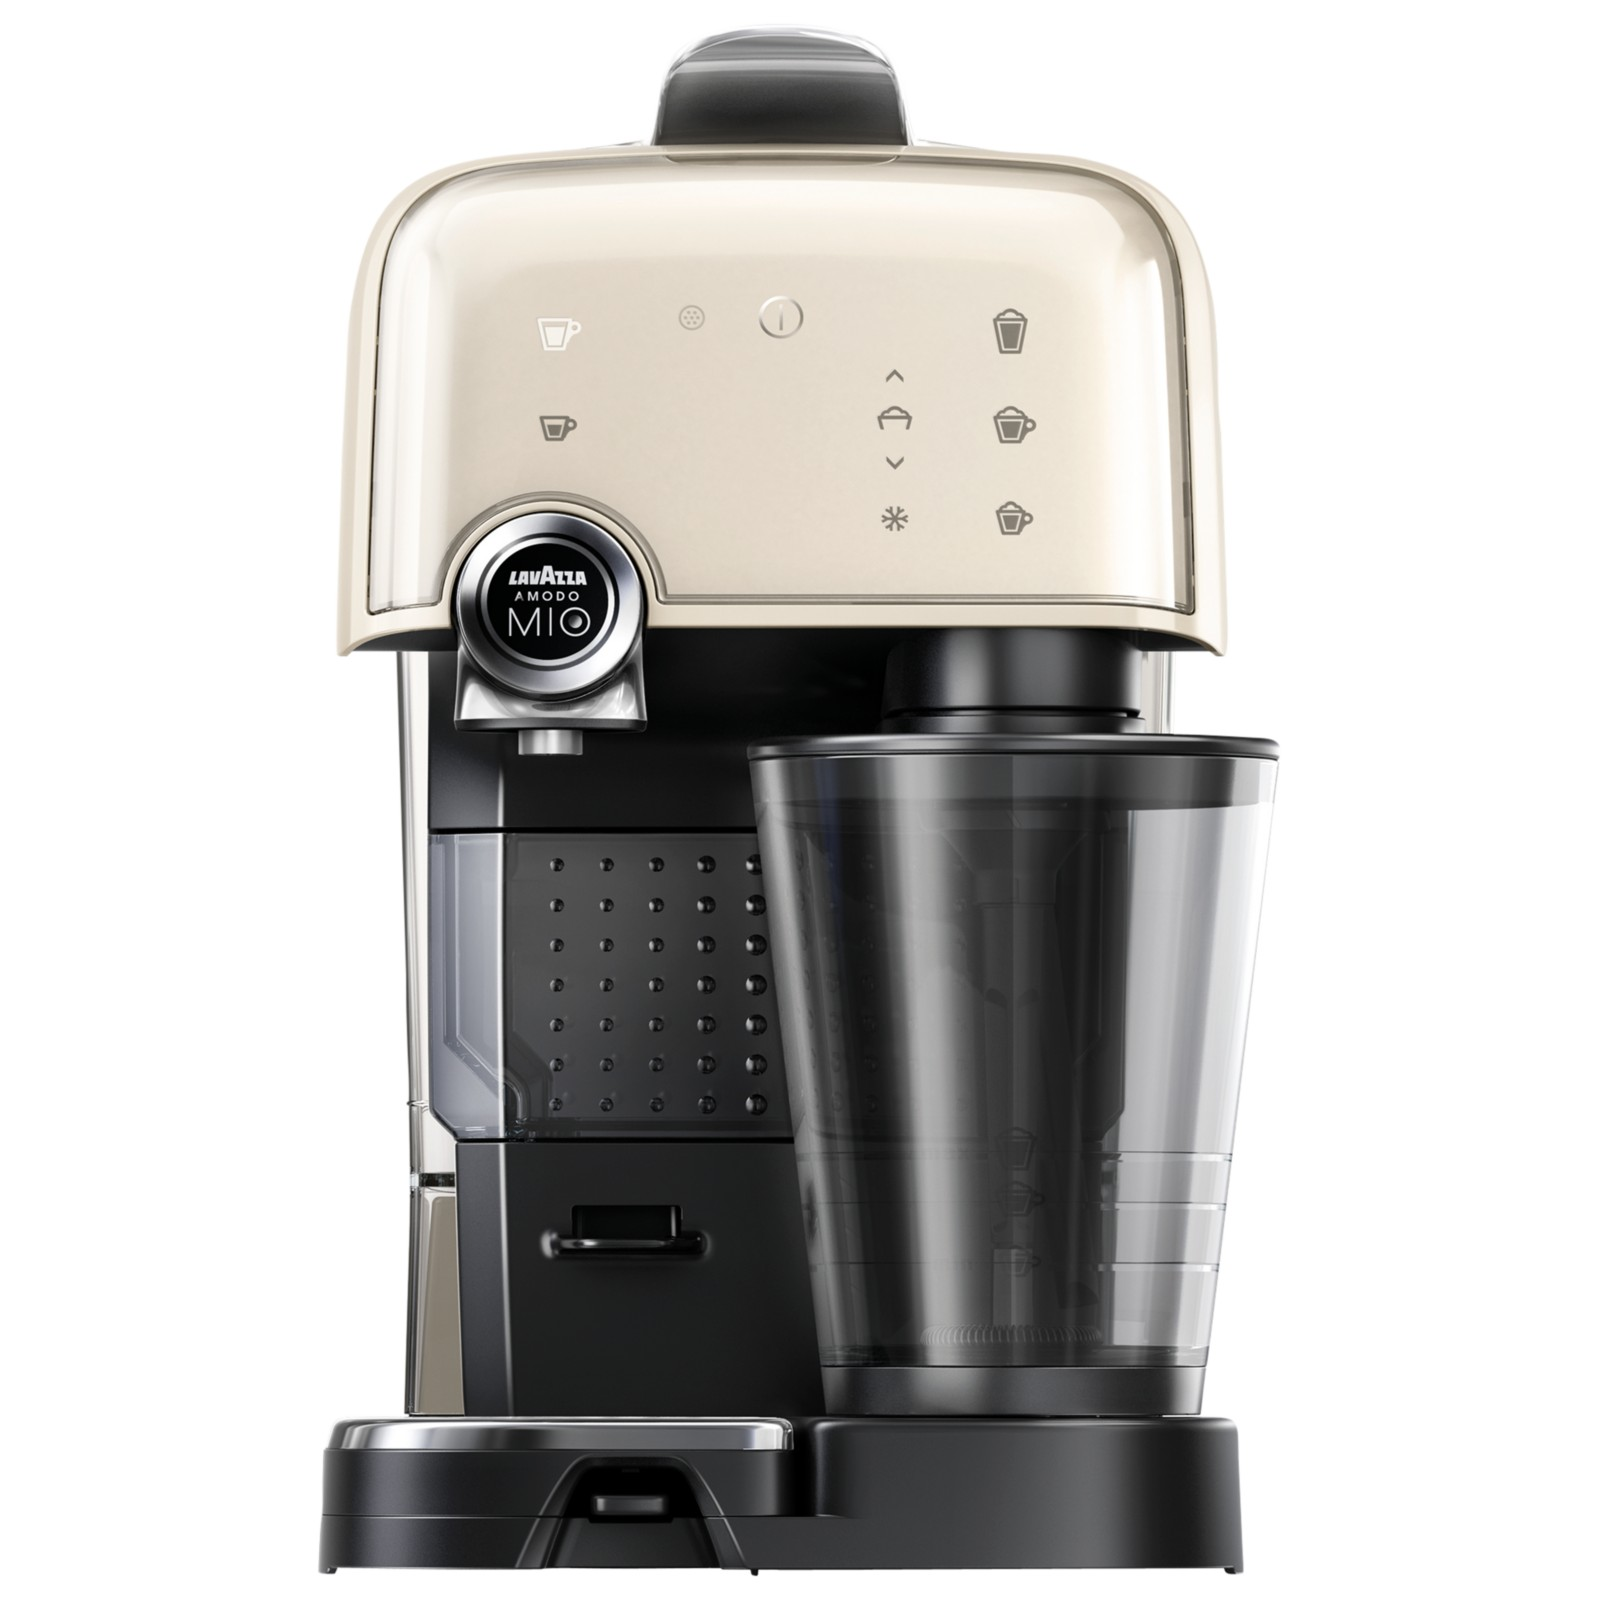 lavazza a modo mio fantasia lm7000 cappuccino latte coffee machine cream review best buy review. Black Bedroom Furniture Sets. Home Design Ideas